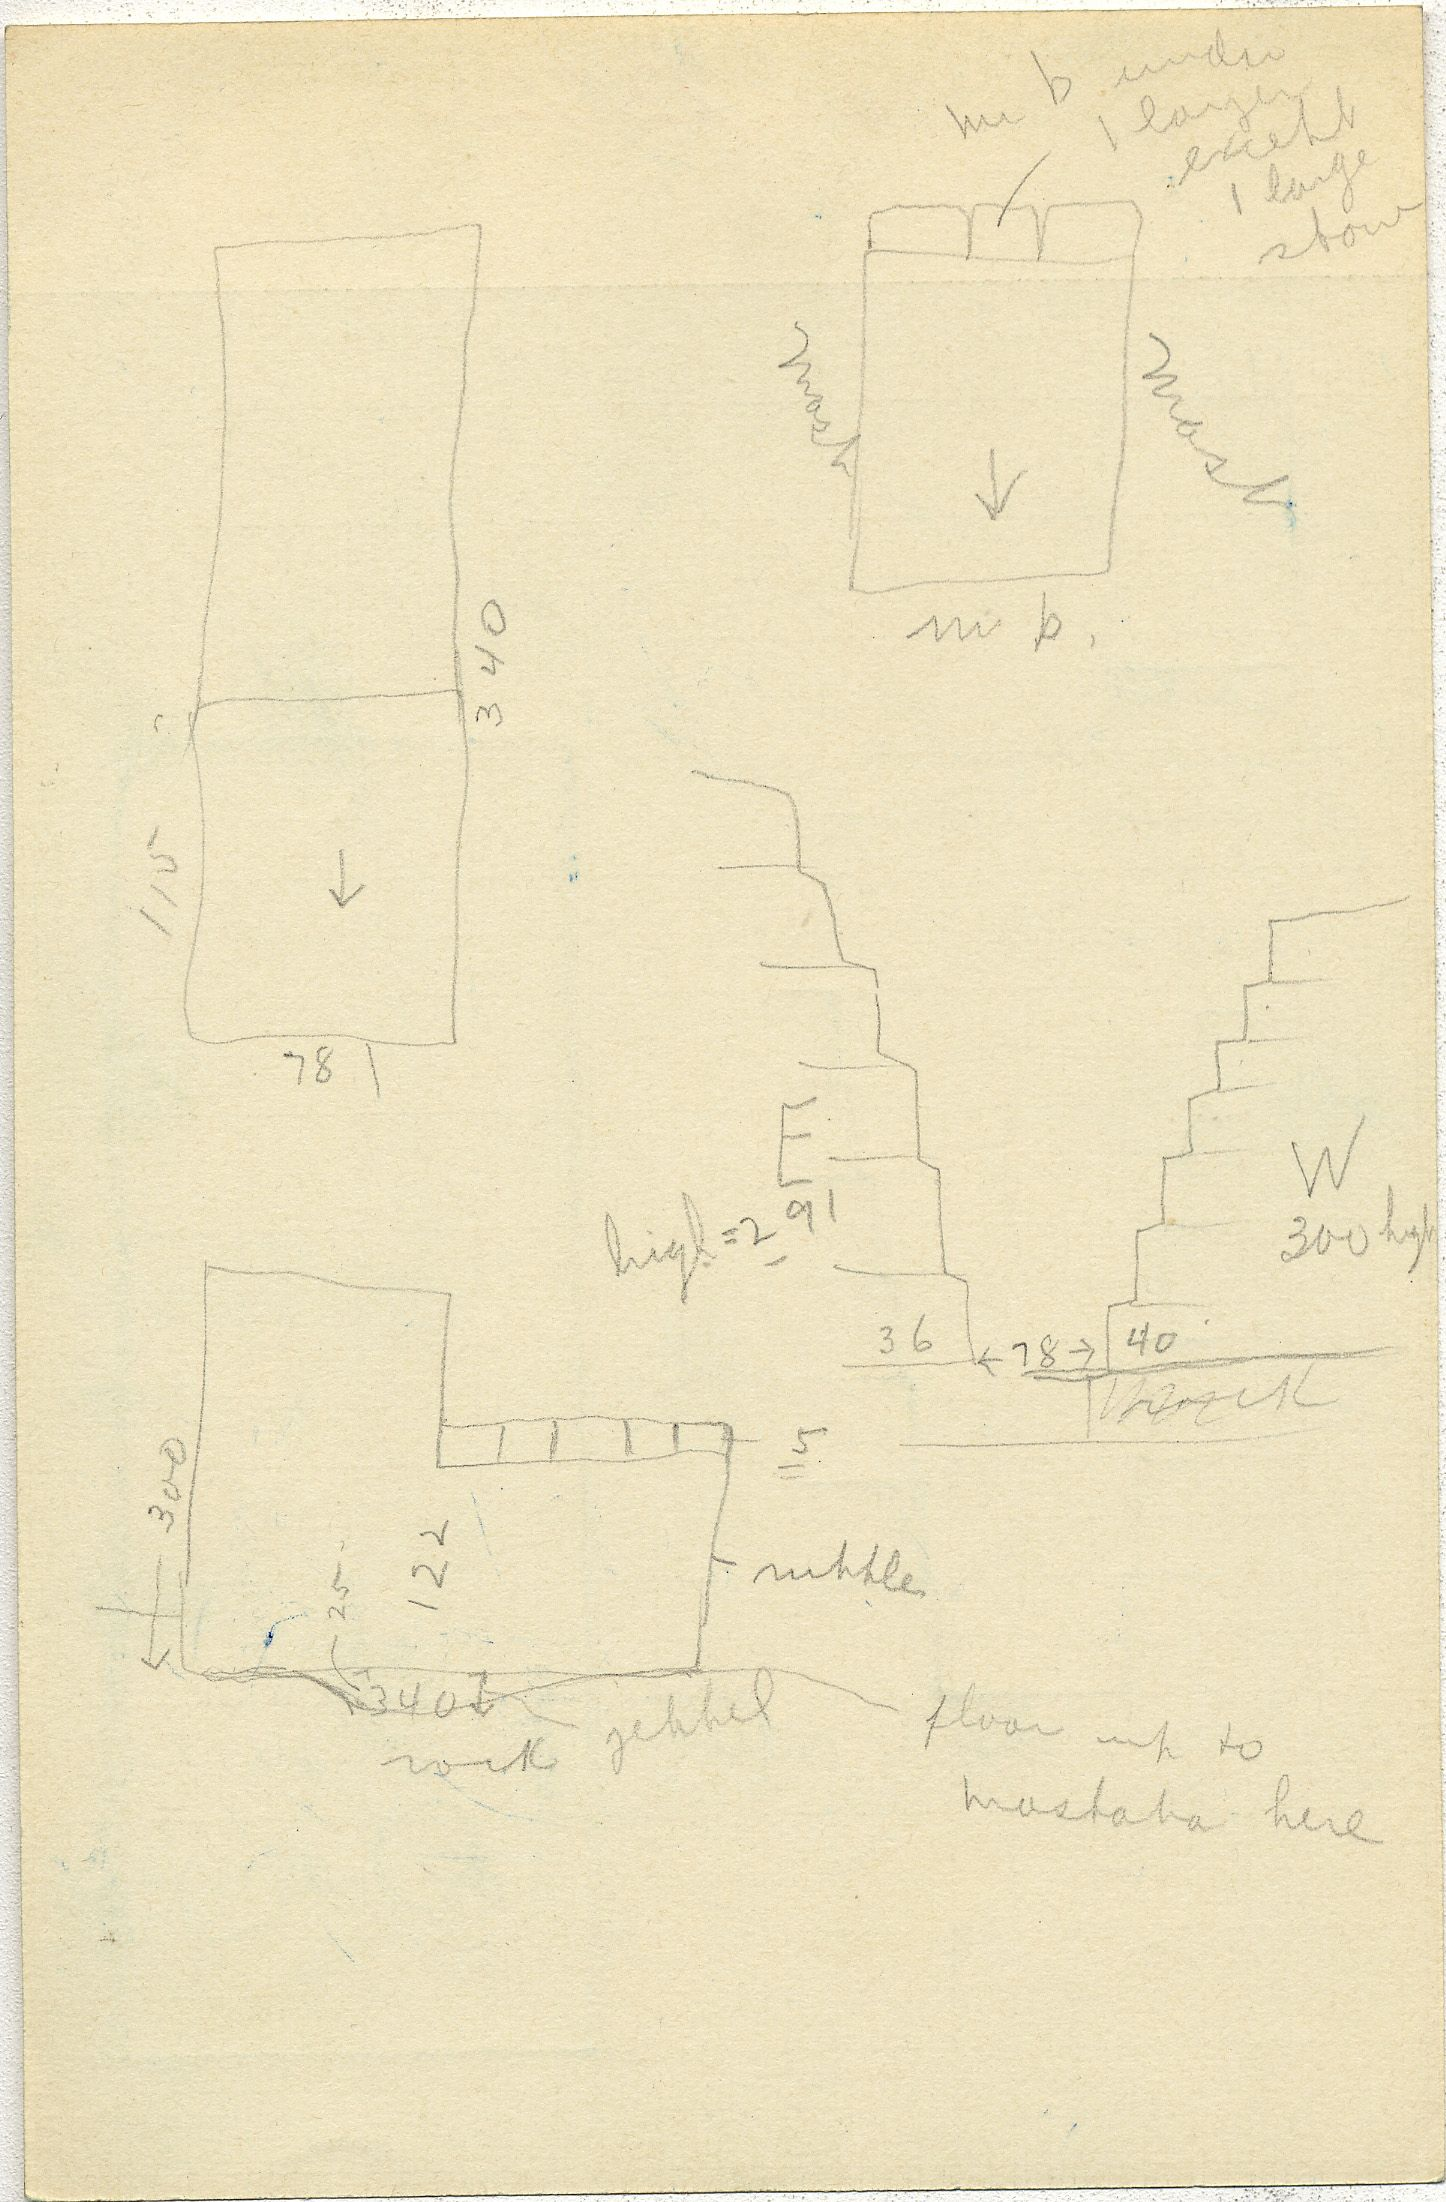 Maps and plans: G 2352, Shaft U, notes